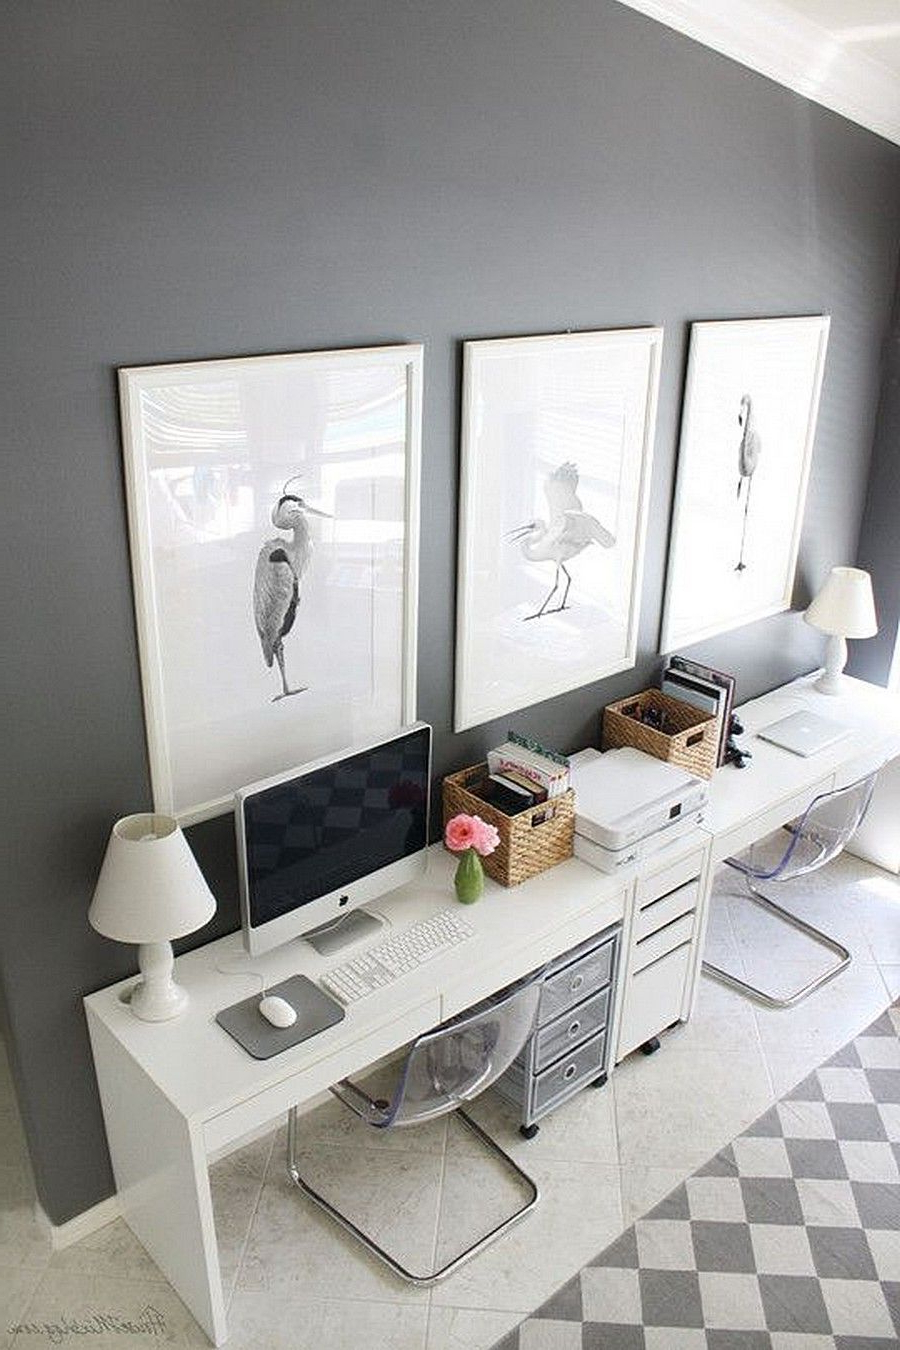 Ikea Micke Computer Workstation White In Gray Room With An